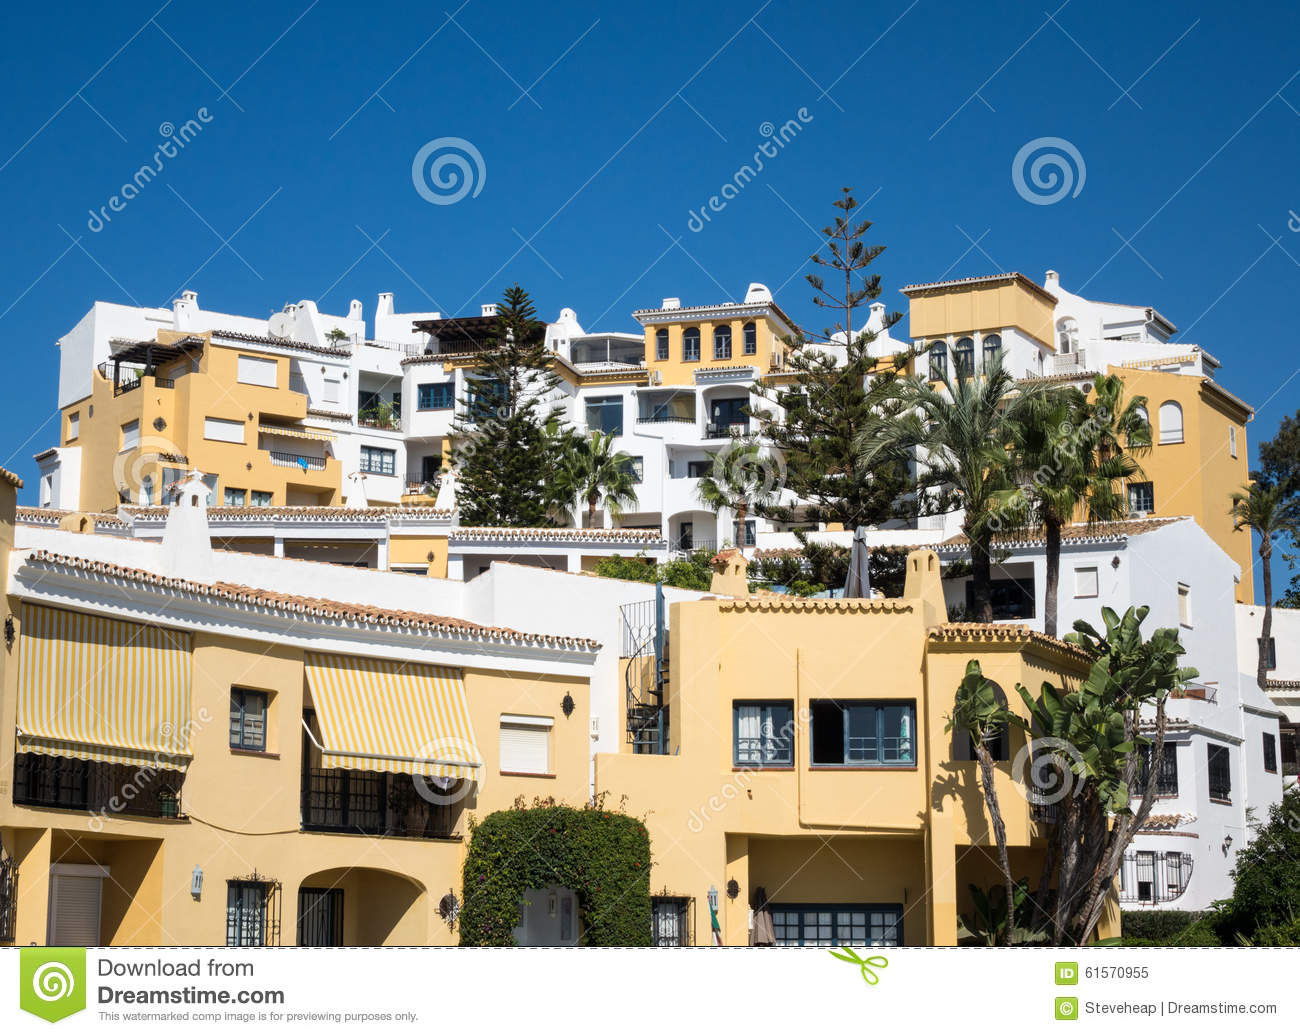 Timeshares And Apartments In Marbella Spain Stock Image ...